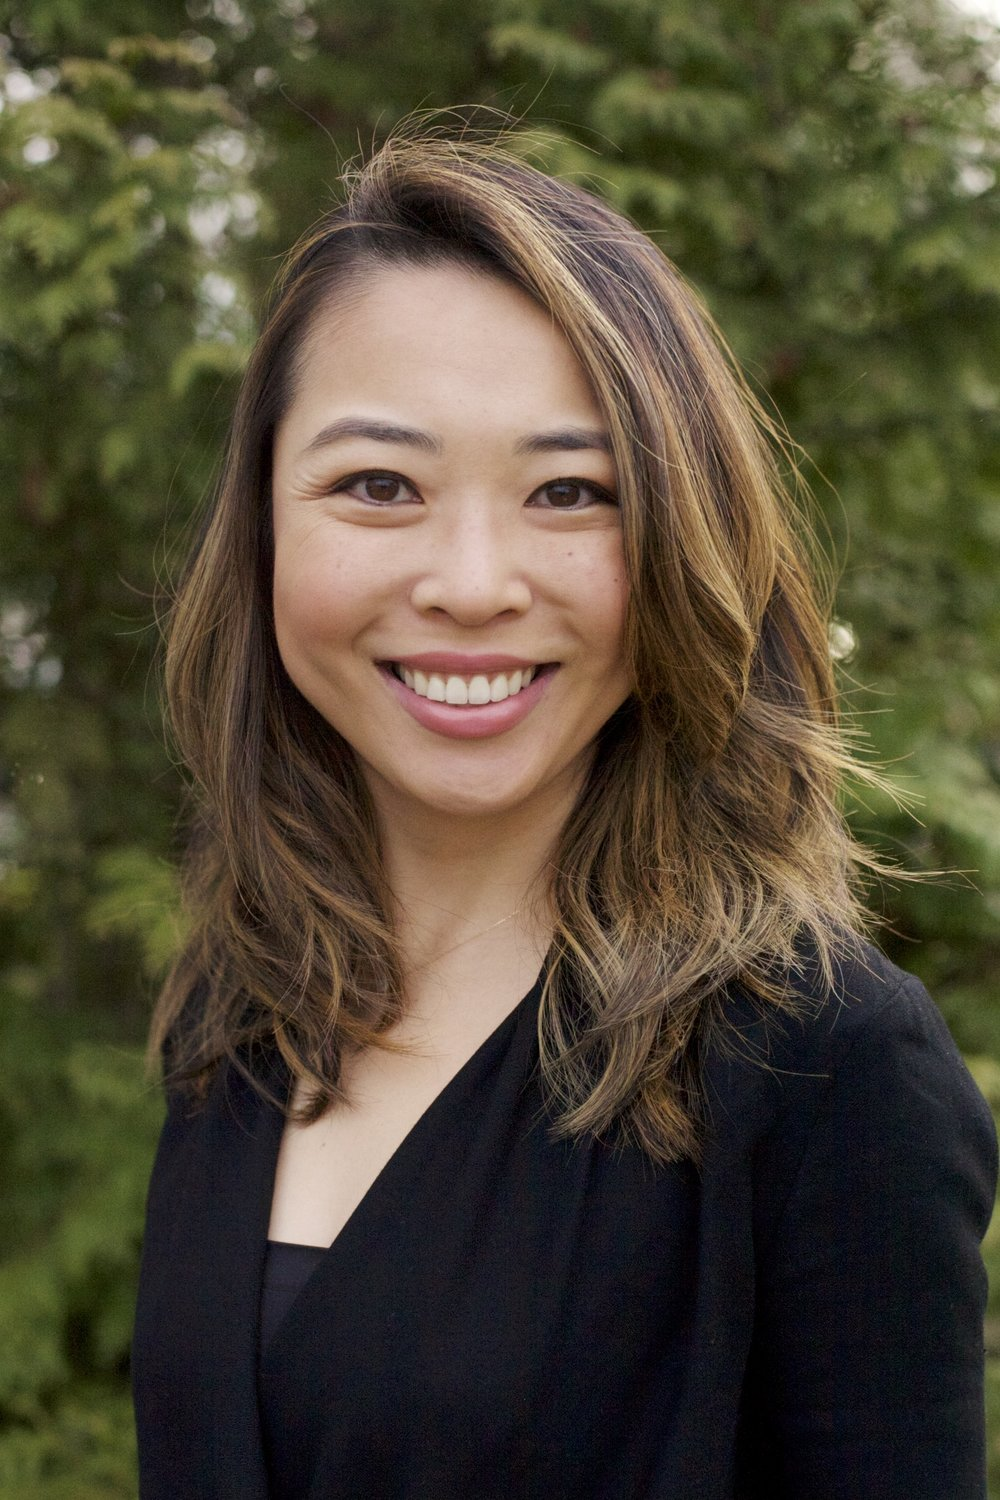 Yurika  Gillum, MSW, LICSW, therapist    ∙  Adults  ∙  Couples therapy  ∙  Relationship issues  ∙  Family of origin issues  ∙  Addiction  ∙  Codependency  ∙  Depression  ∙  Anxiety  ∙  Trauma  ∙  Women's issues (infertility, pregnancy, postpartum, motherhood, losses)  ∙  Acute and chronic mental health diagnoses  ∙  Grief and loss  ∙  Practices in Mountlake Terrace and Southcenter